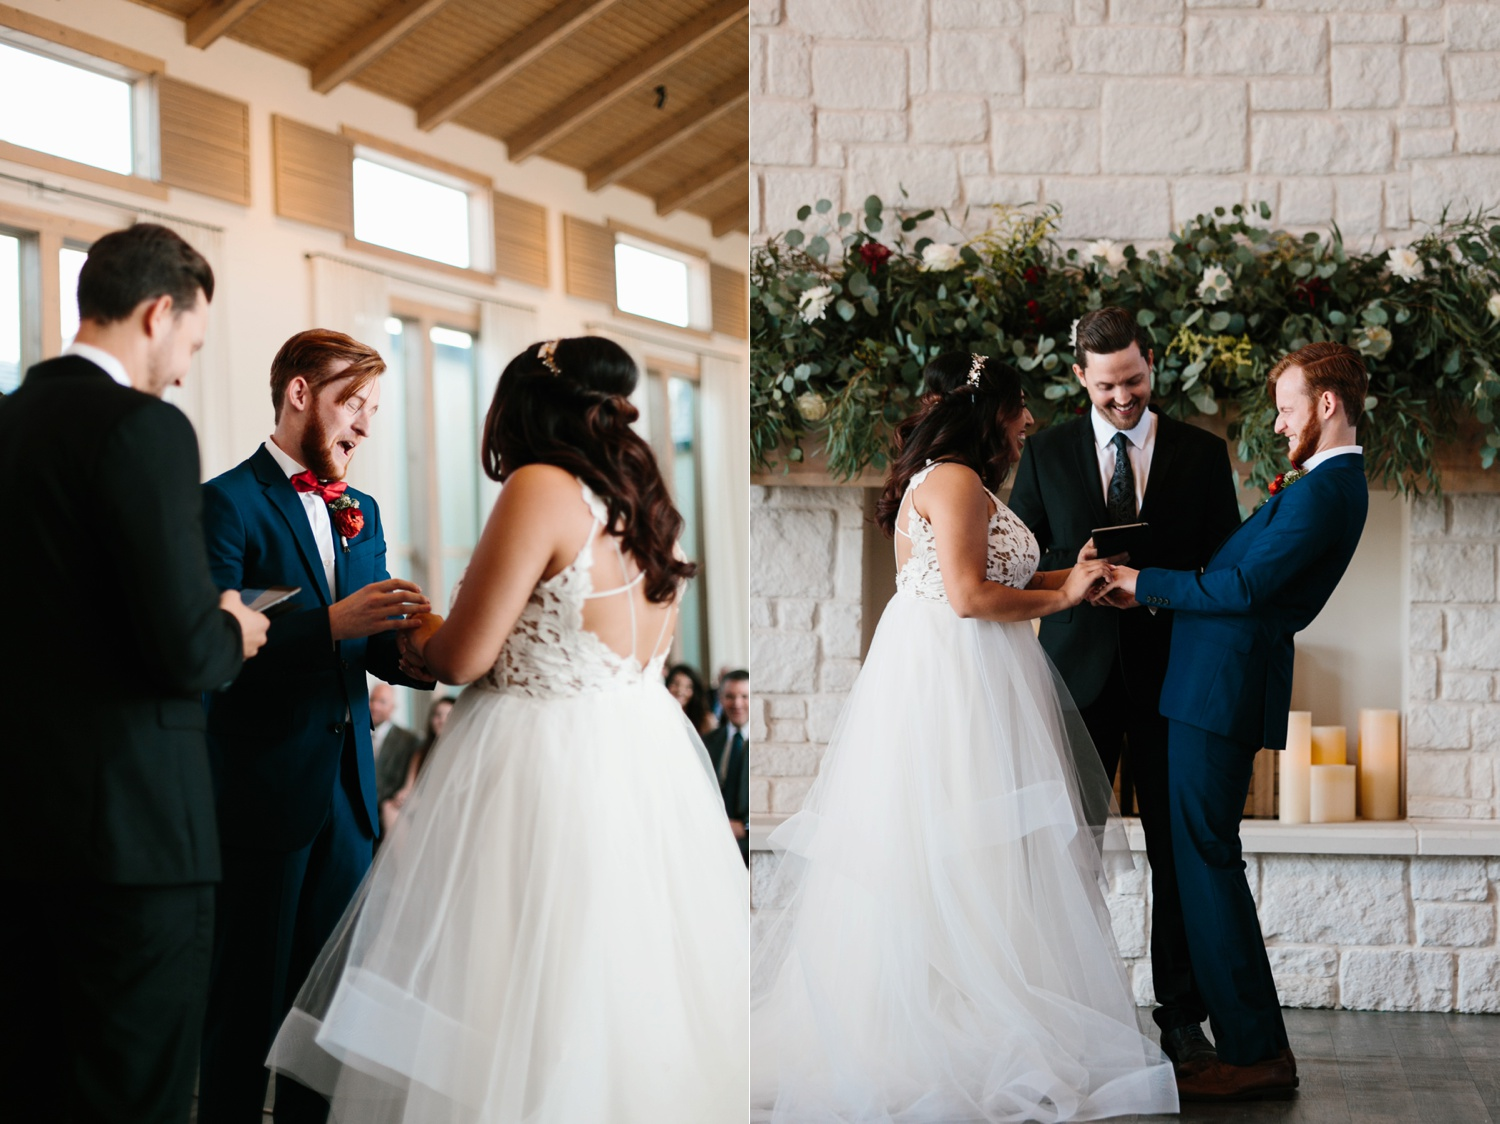 Grant + Lysette | a vibrant, deep burgundy and navy, and mixed metals wedding at Hidden Pines Chapel by North Texas Wedding Photographer Rachel Meagan Photography 092